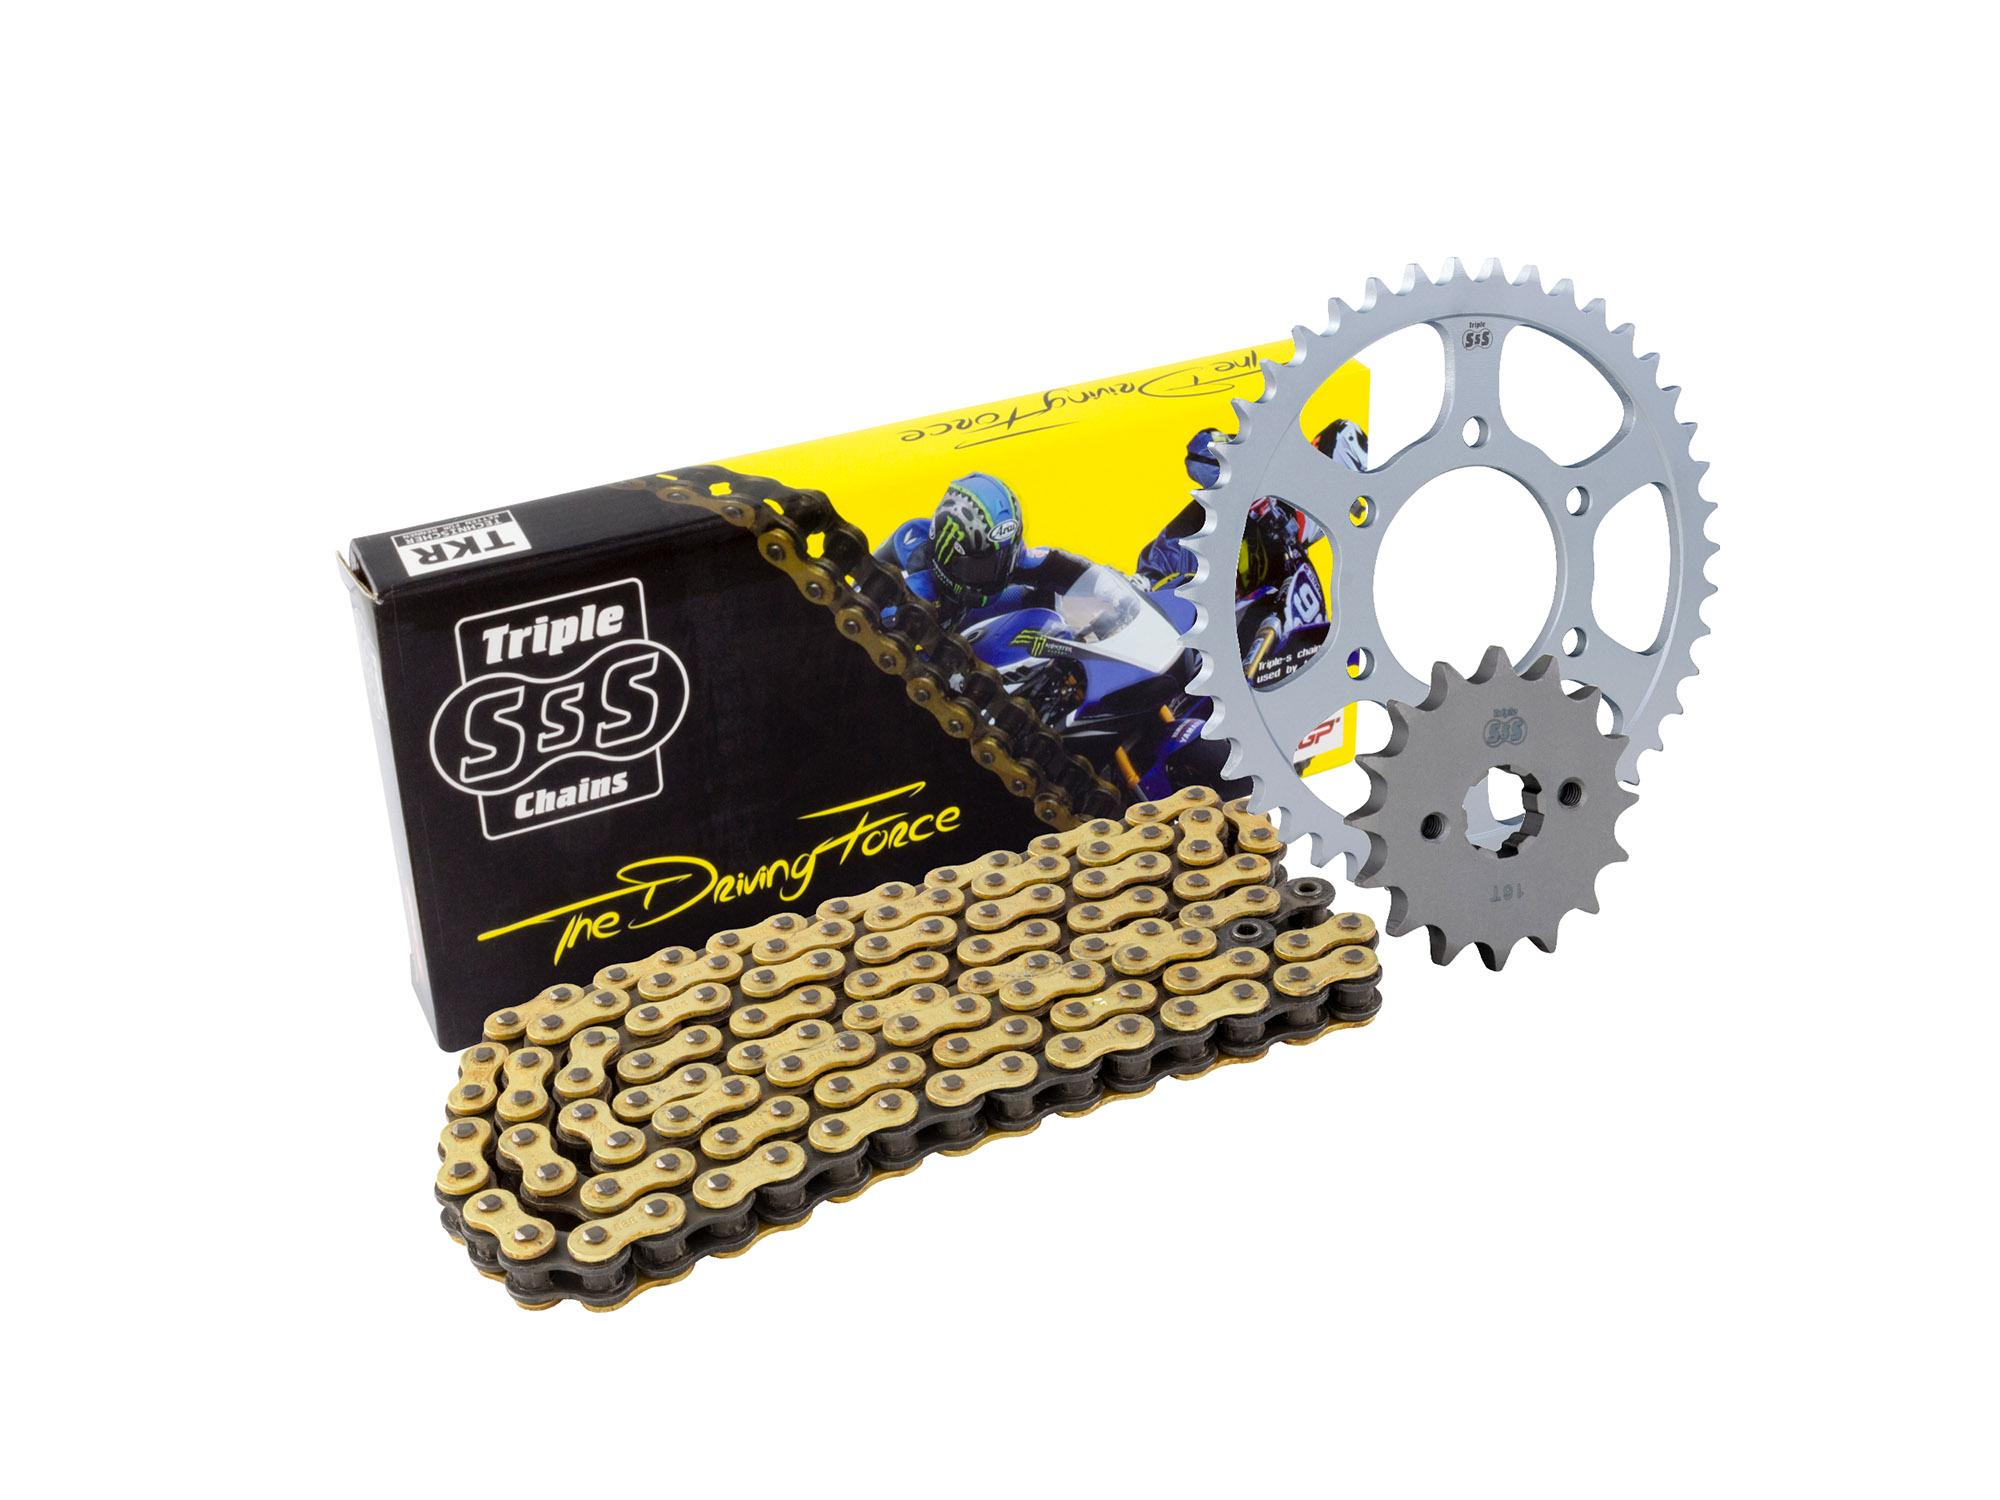 Yamaha TDM850 99-01 Chain & Sprocket Kit: 16T Front, 43T Rear, HD O-Ring Gold Chain 525H 114 Link